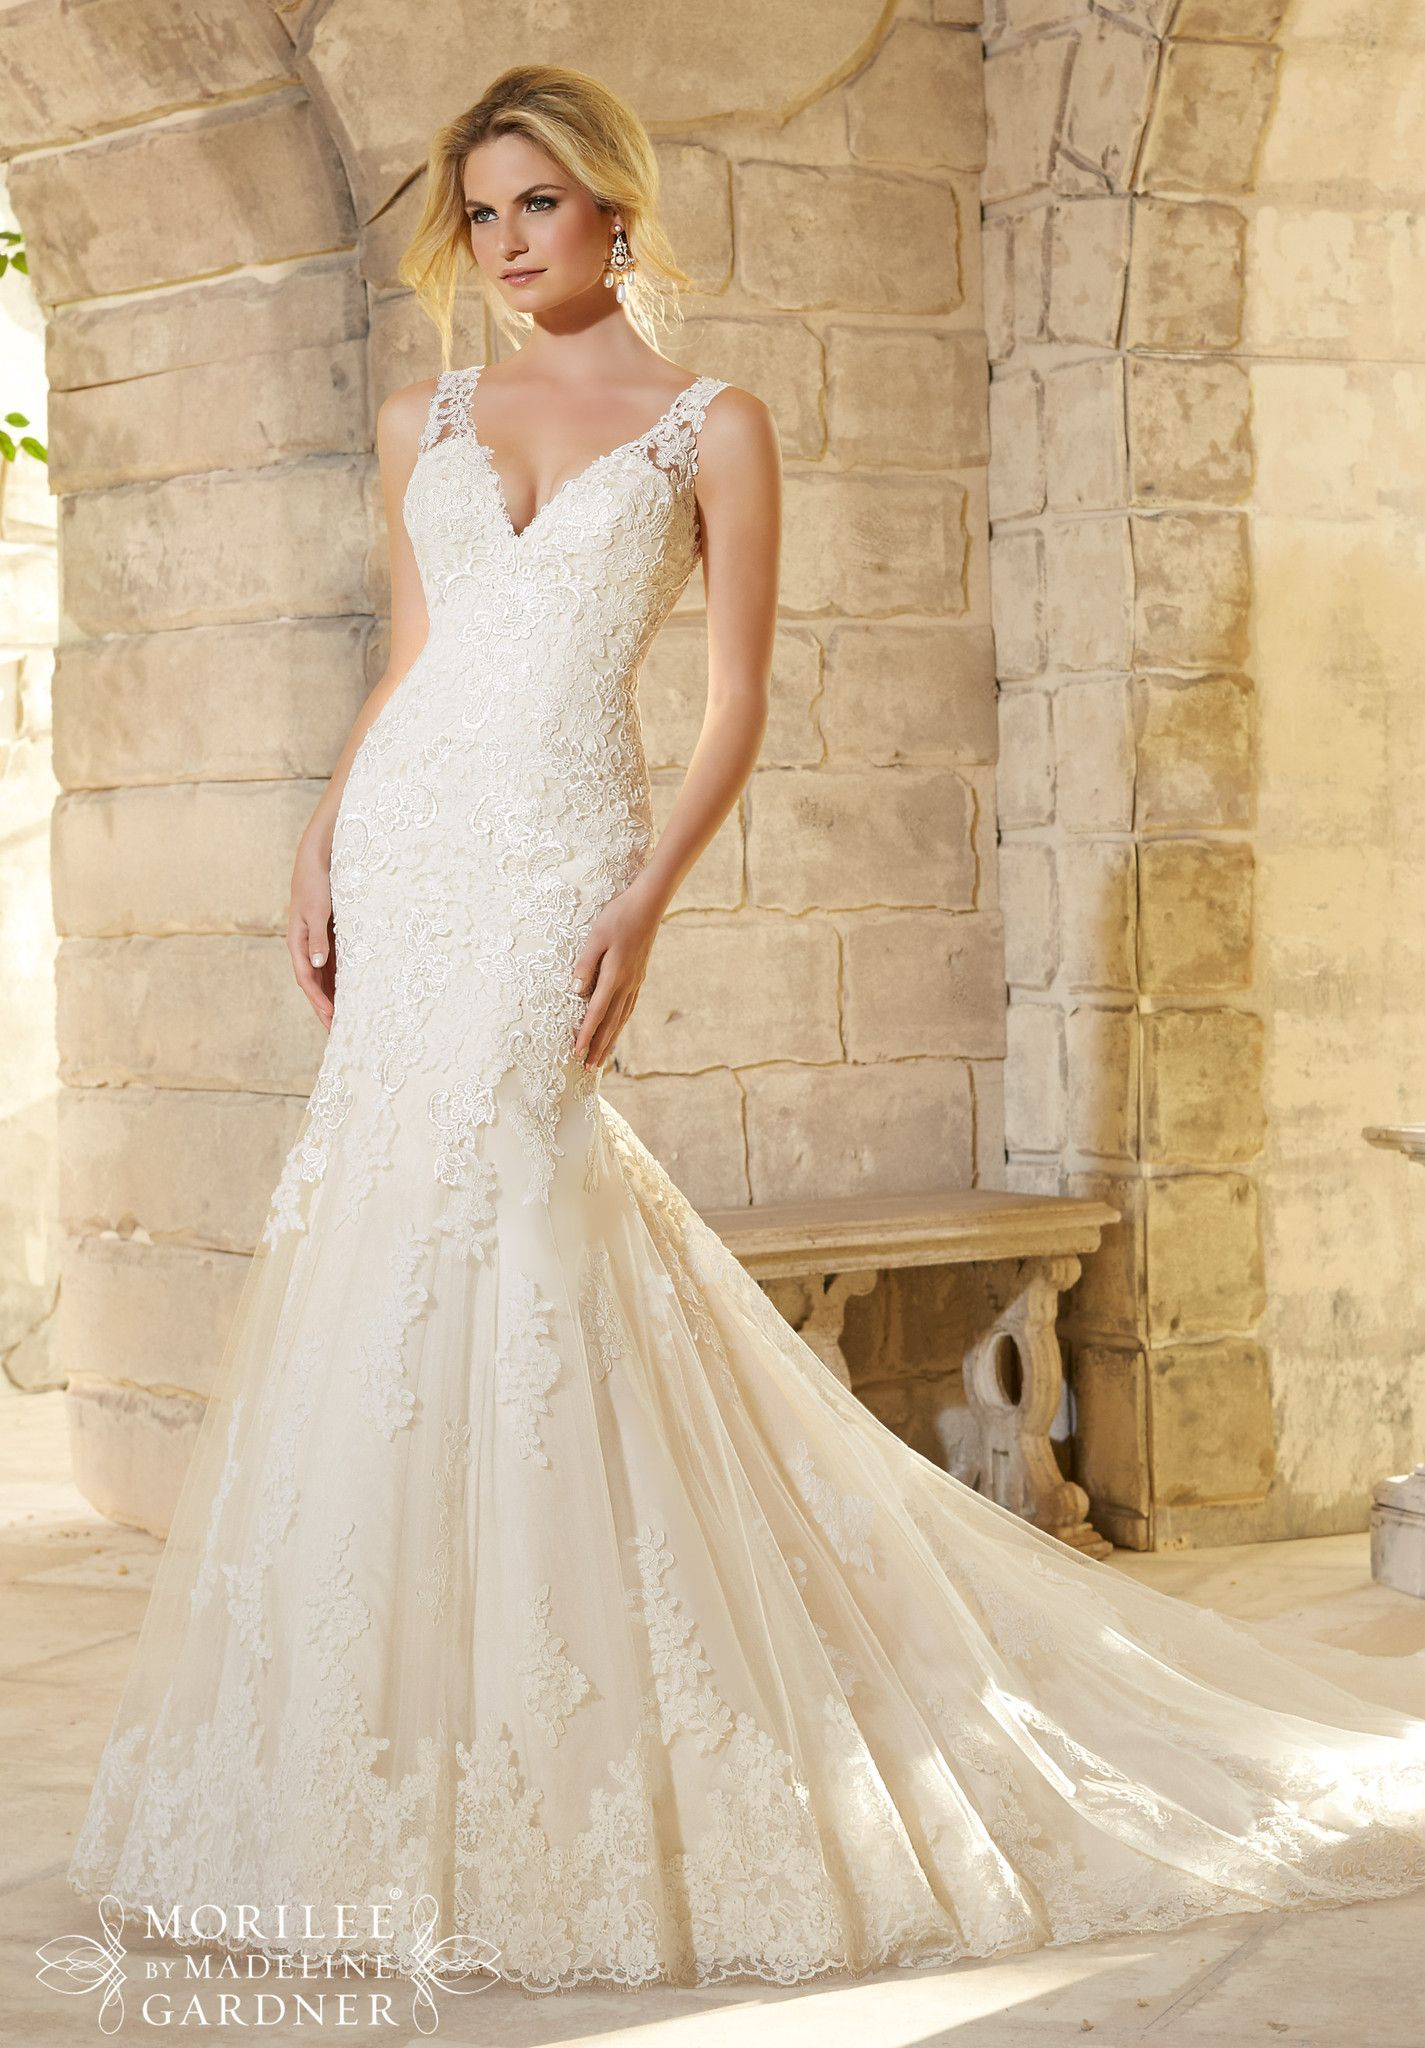 Chinese wedding dress rental los angeles  Morilee    All Dressed Up Bridal Gown in   Our Wedding